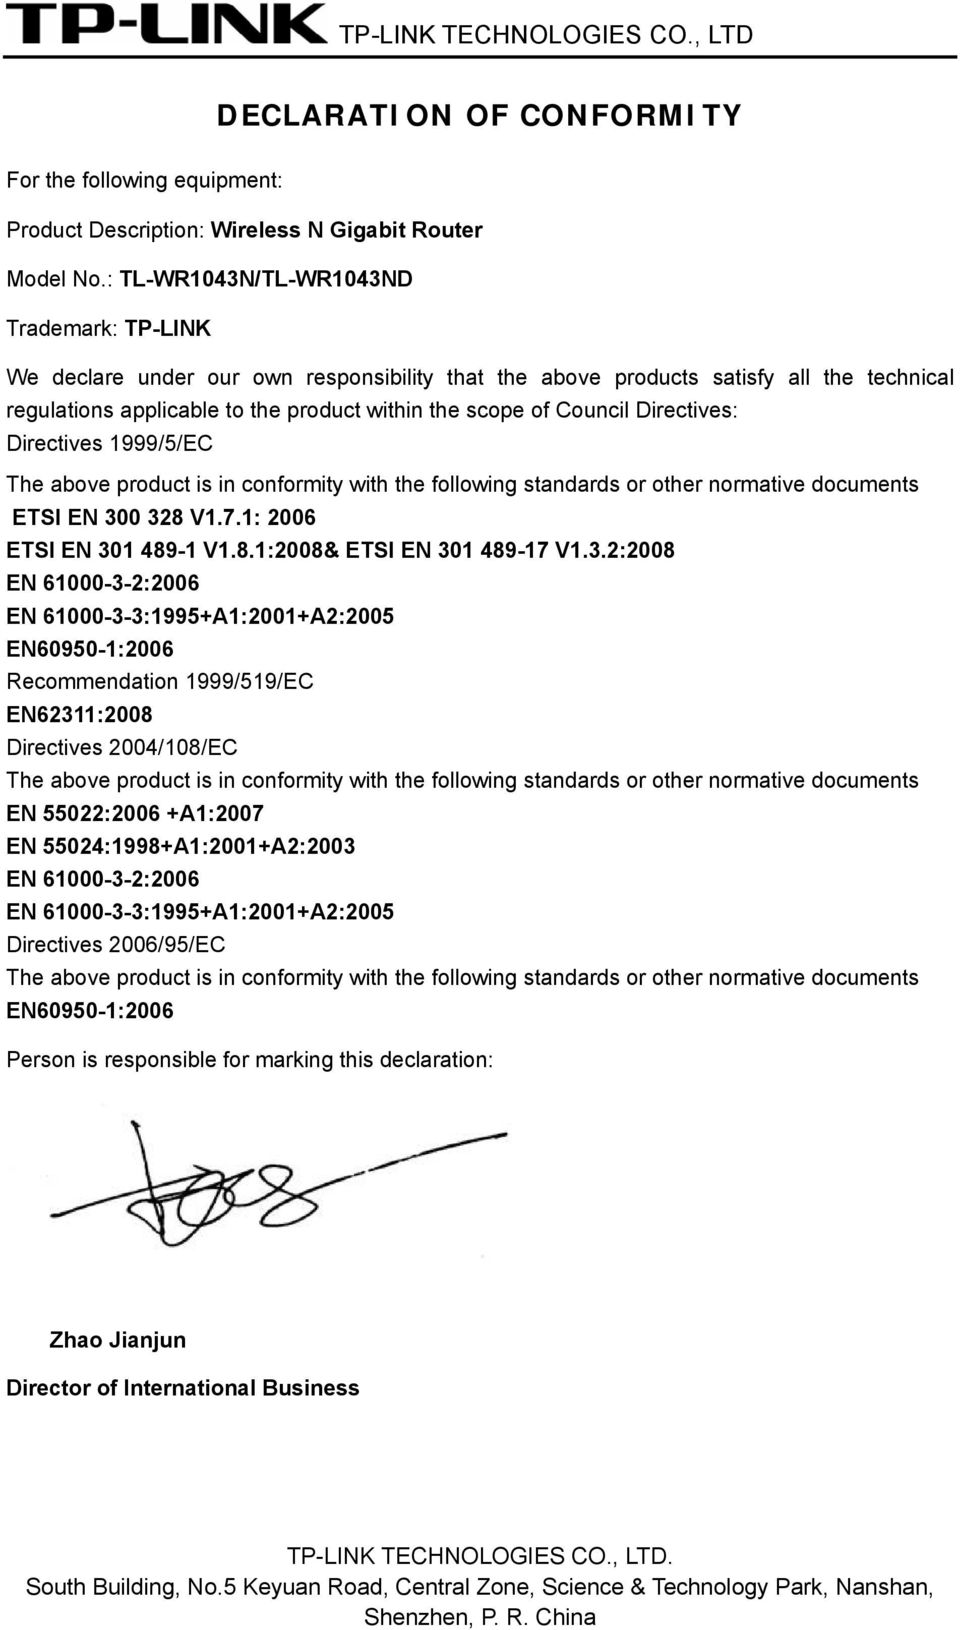 Directives: Directives 1999/5/EC The above product is in conformity with the following standards or other normative documents ETSI EN 300 328 V1.7.1: 2006 ETSI EN 301 489-1 V1.8.1:2008& ETSI EN 301 489-17 V1.